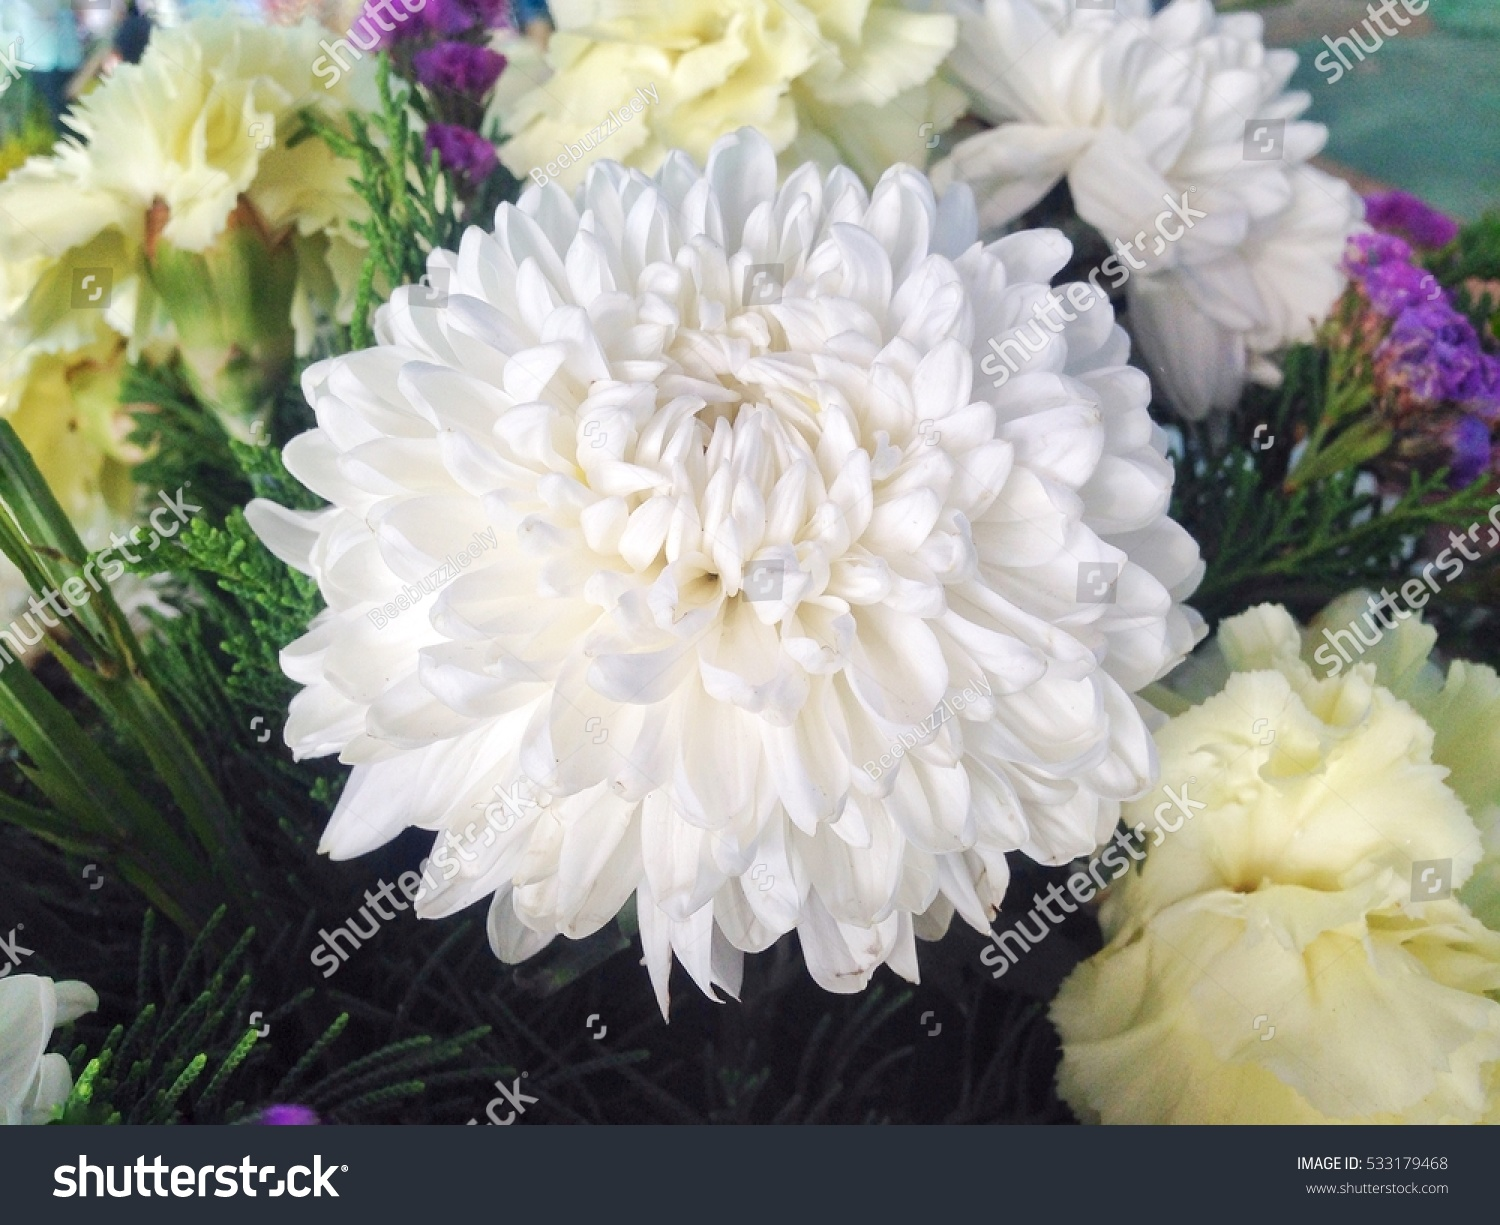 Artificial White Carnation Flower From Top View Ez Canvas